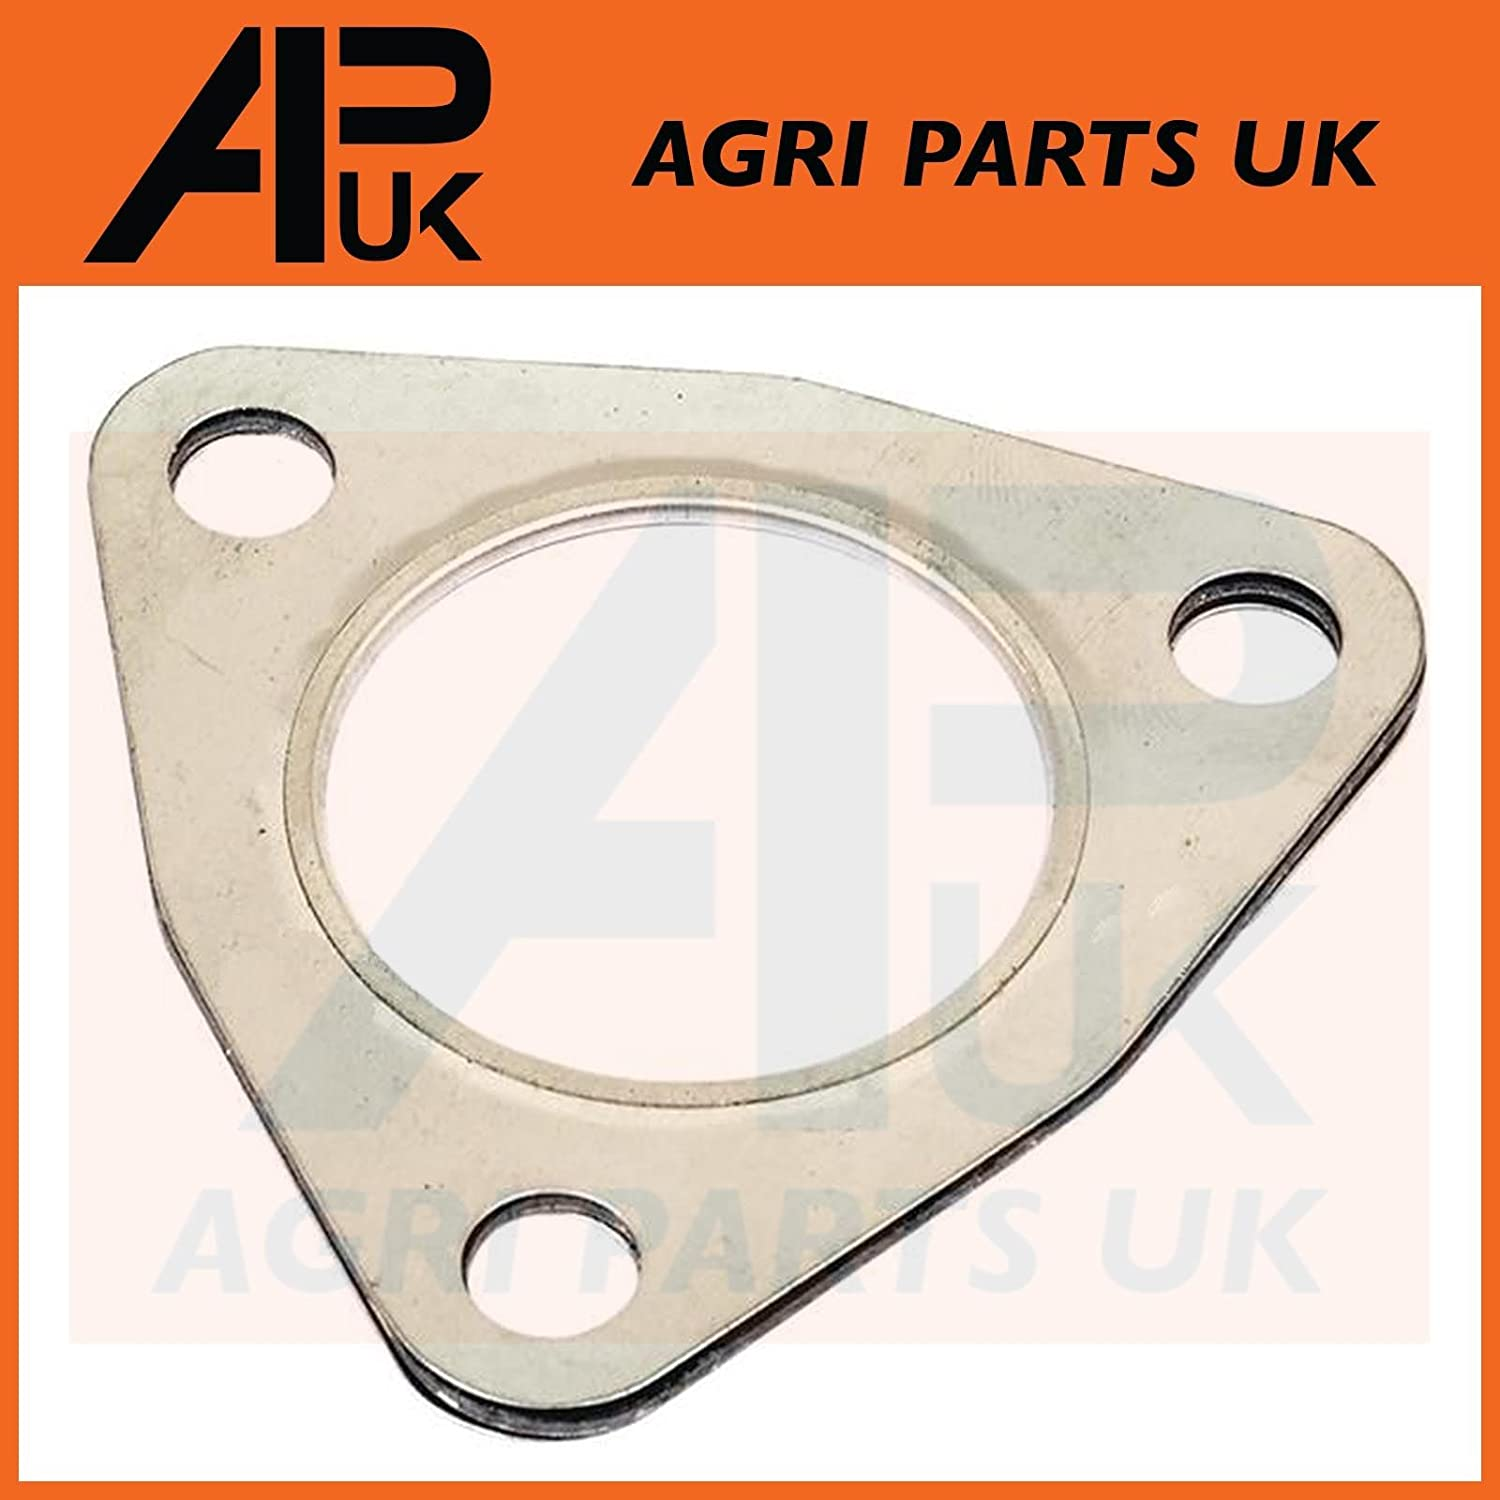 APUK Massey Ferguson 35 65 135 165 550 Leyland Tractor Exhaust Elbow Gasket 3 Hole Agri Parts UK Ltd